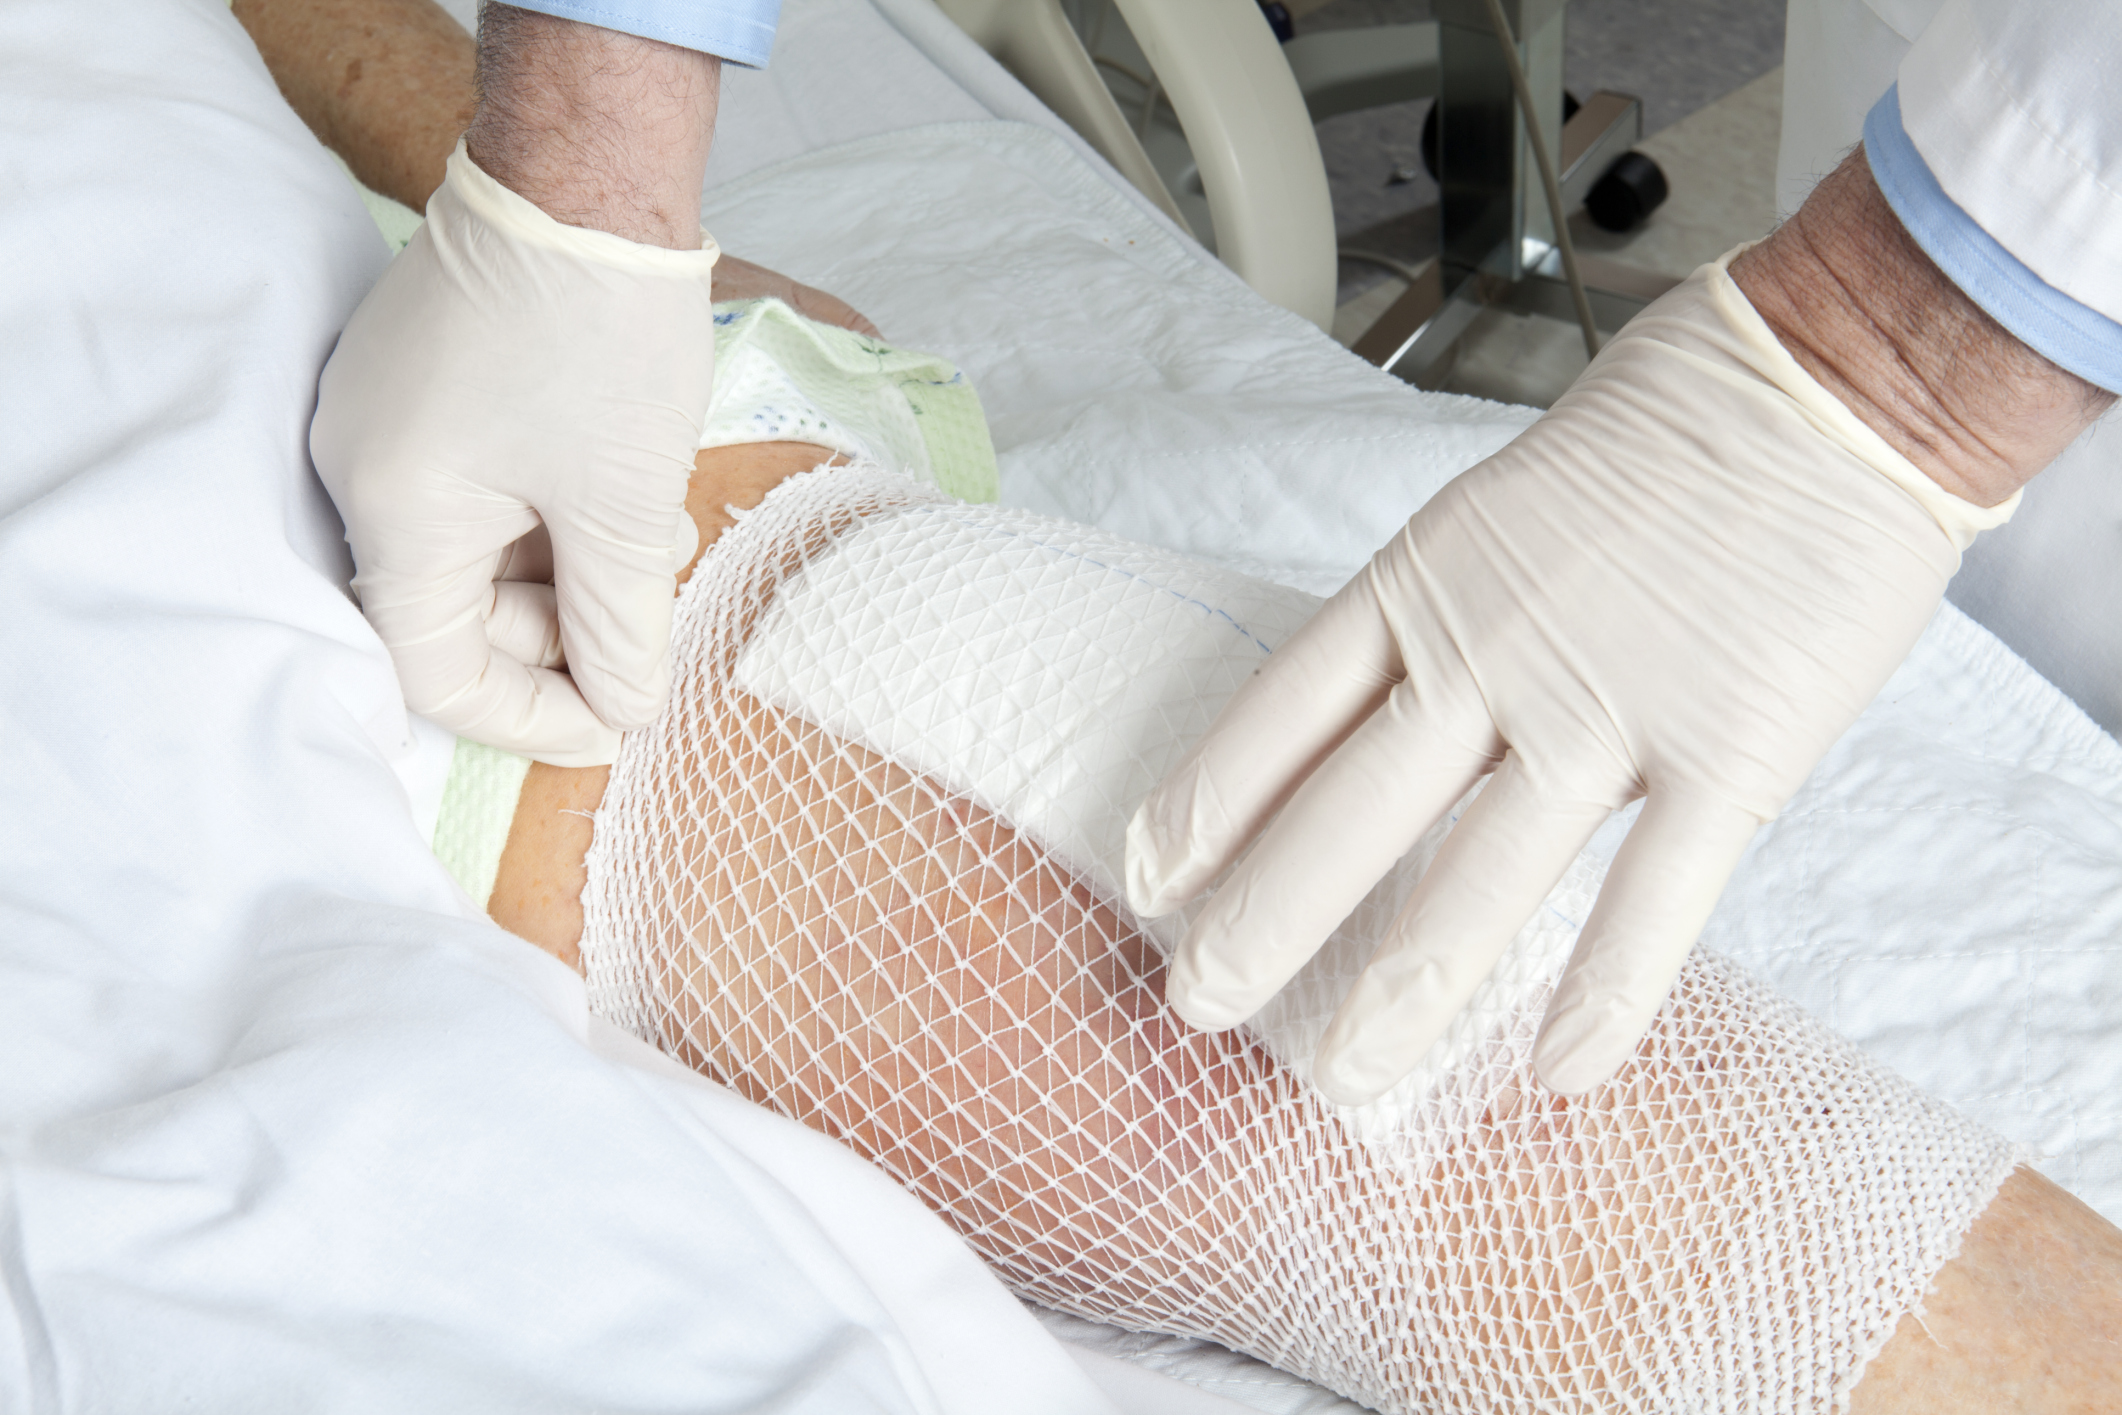 CDC: Knee replacement surgeries on the rise